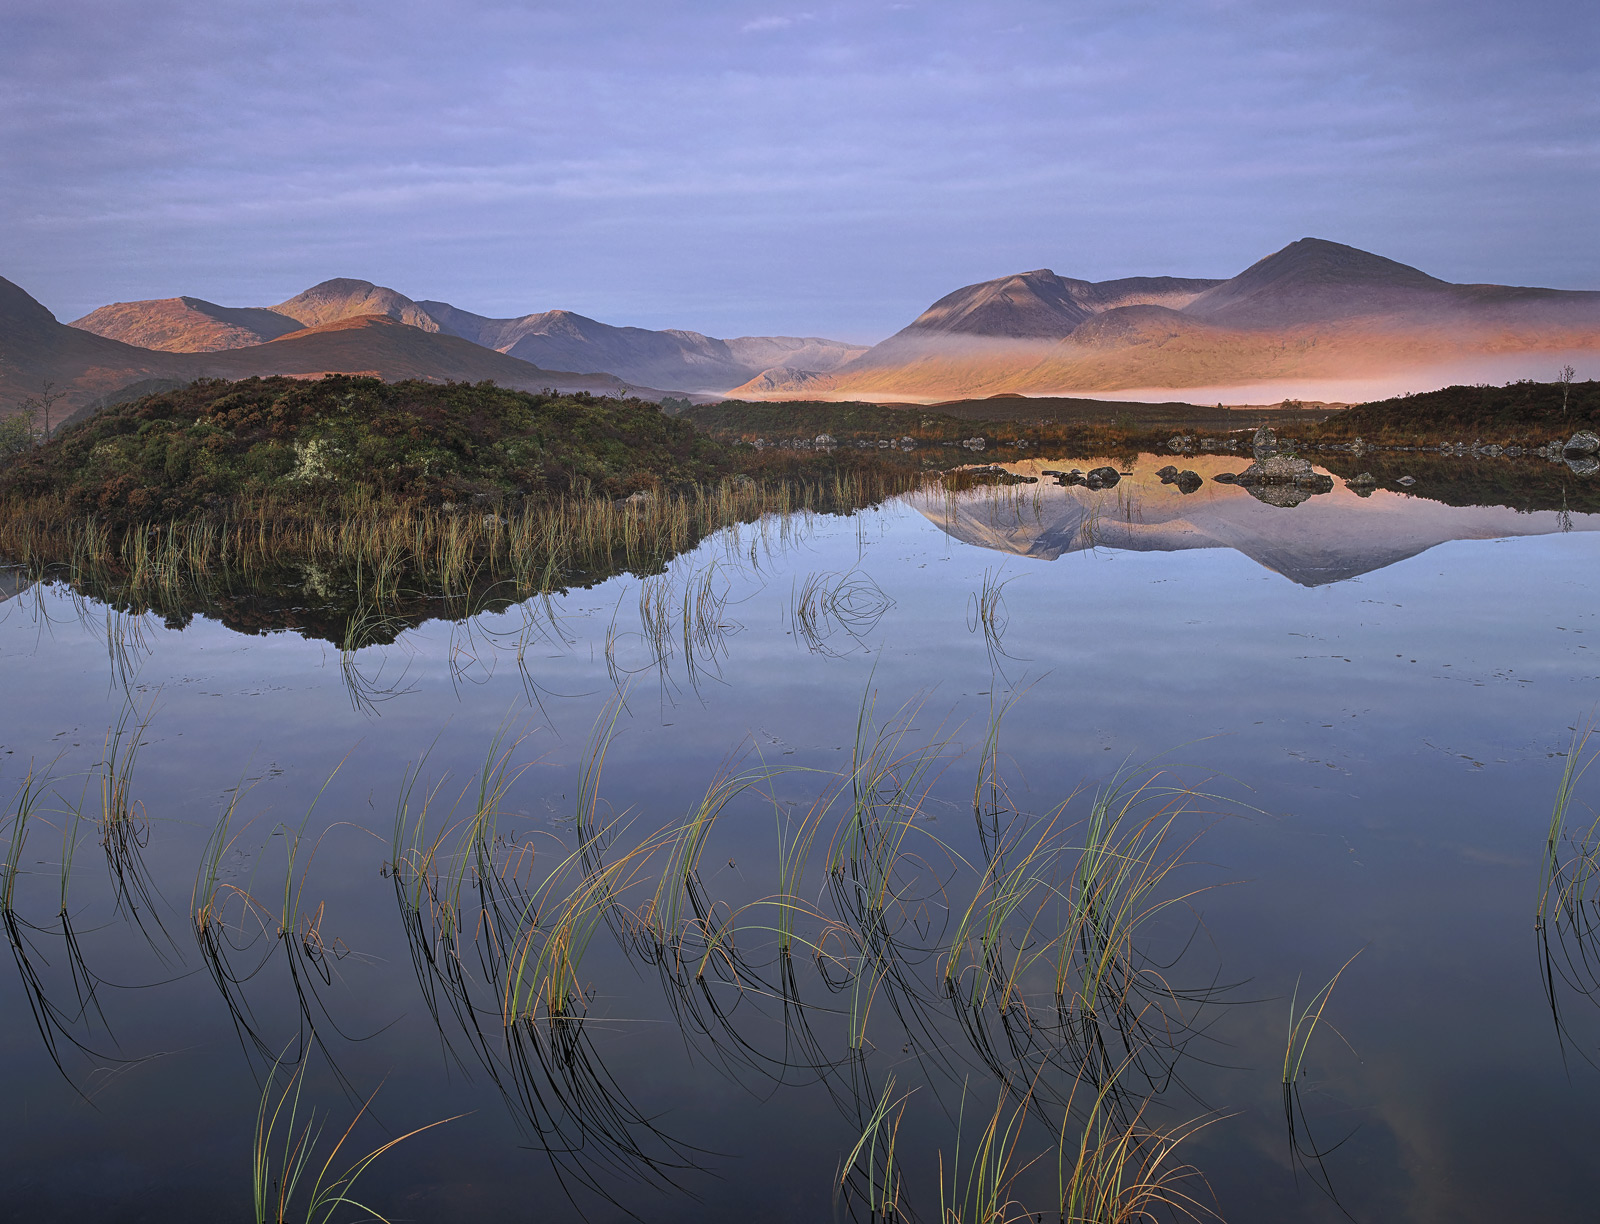 Autumn Mellow, Rannoch Moor, Glencoe, Scotland, sublime, morning, wraiths, mist, composition, grasses, mountain, palette, photo